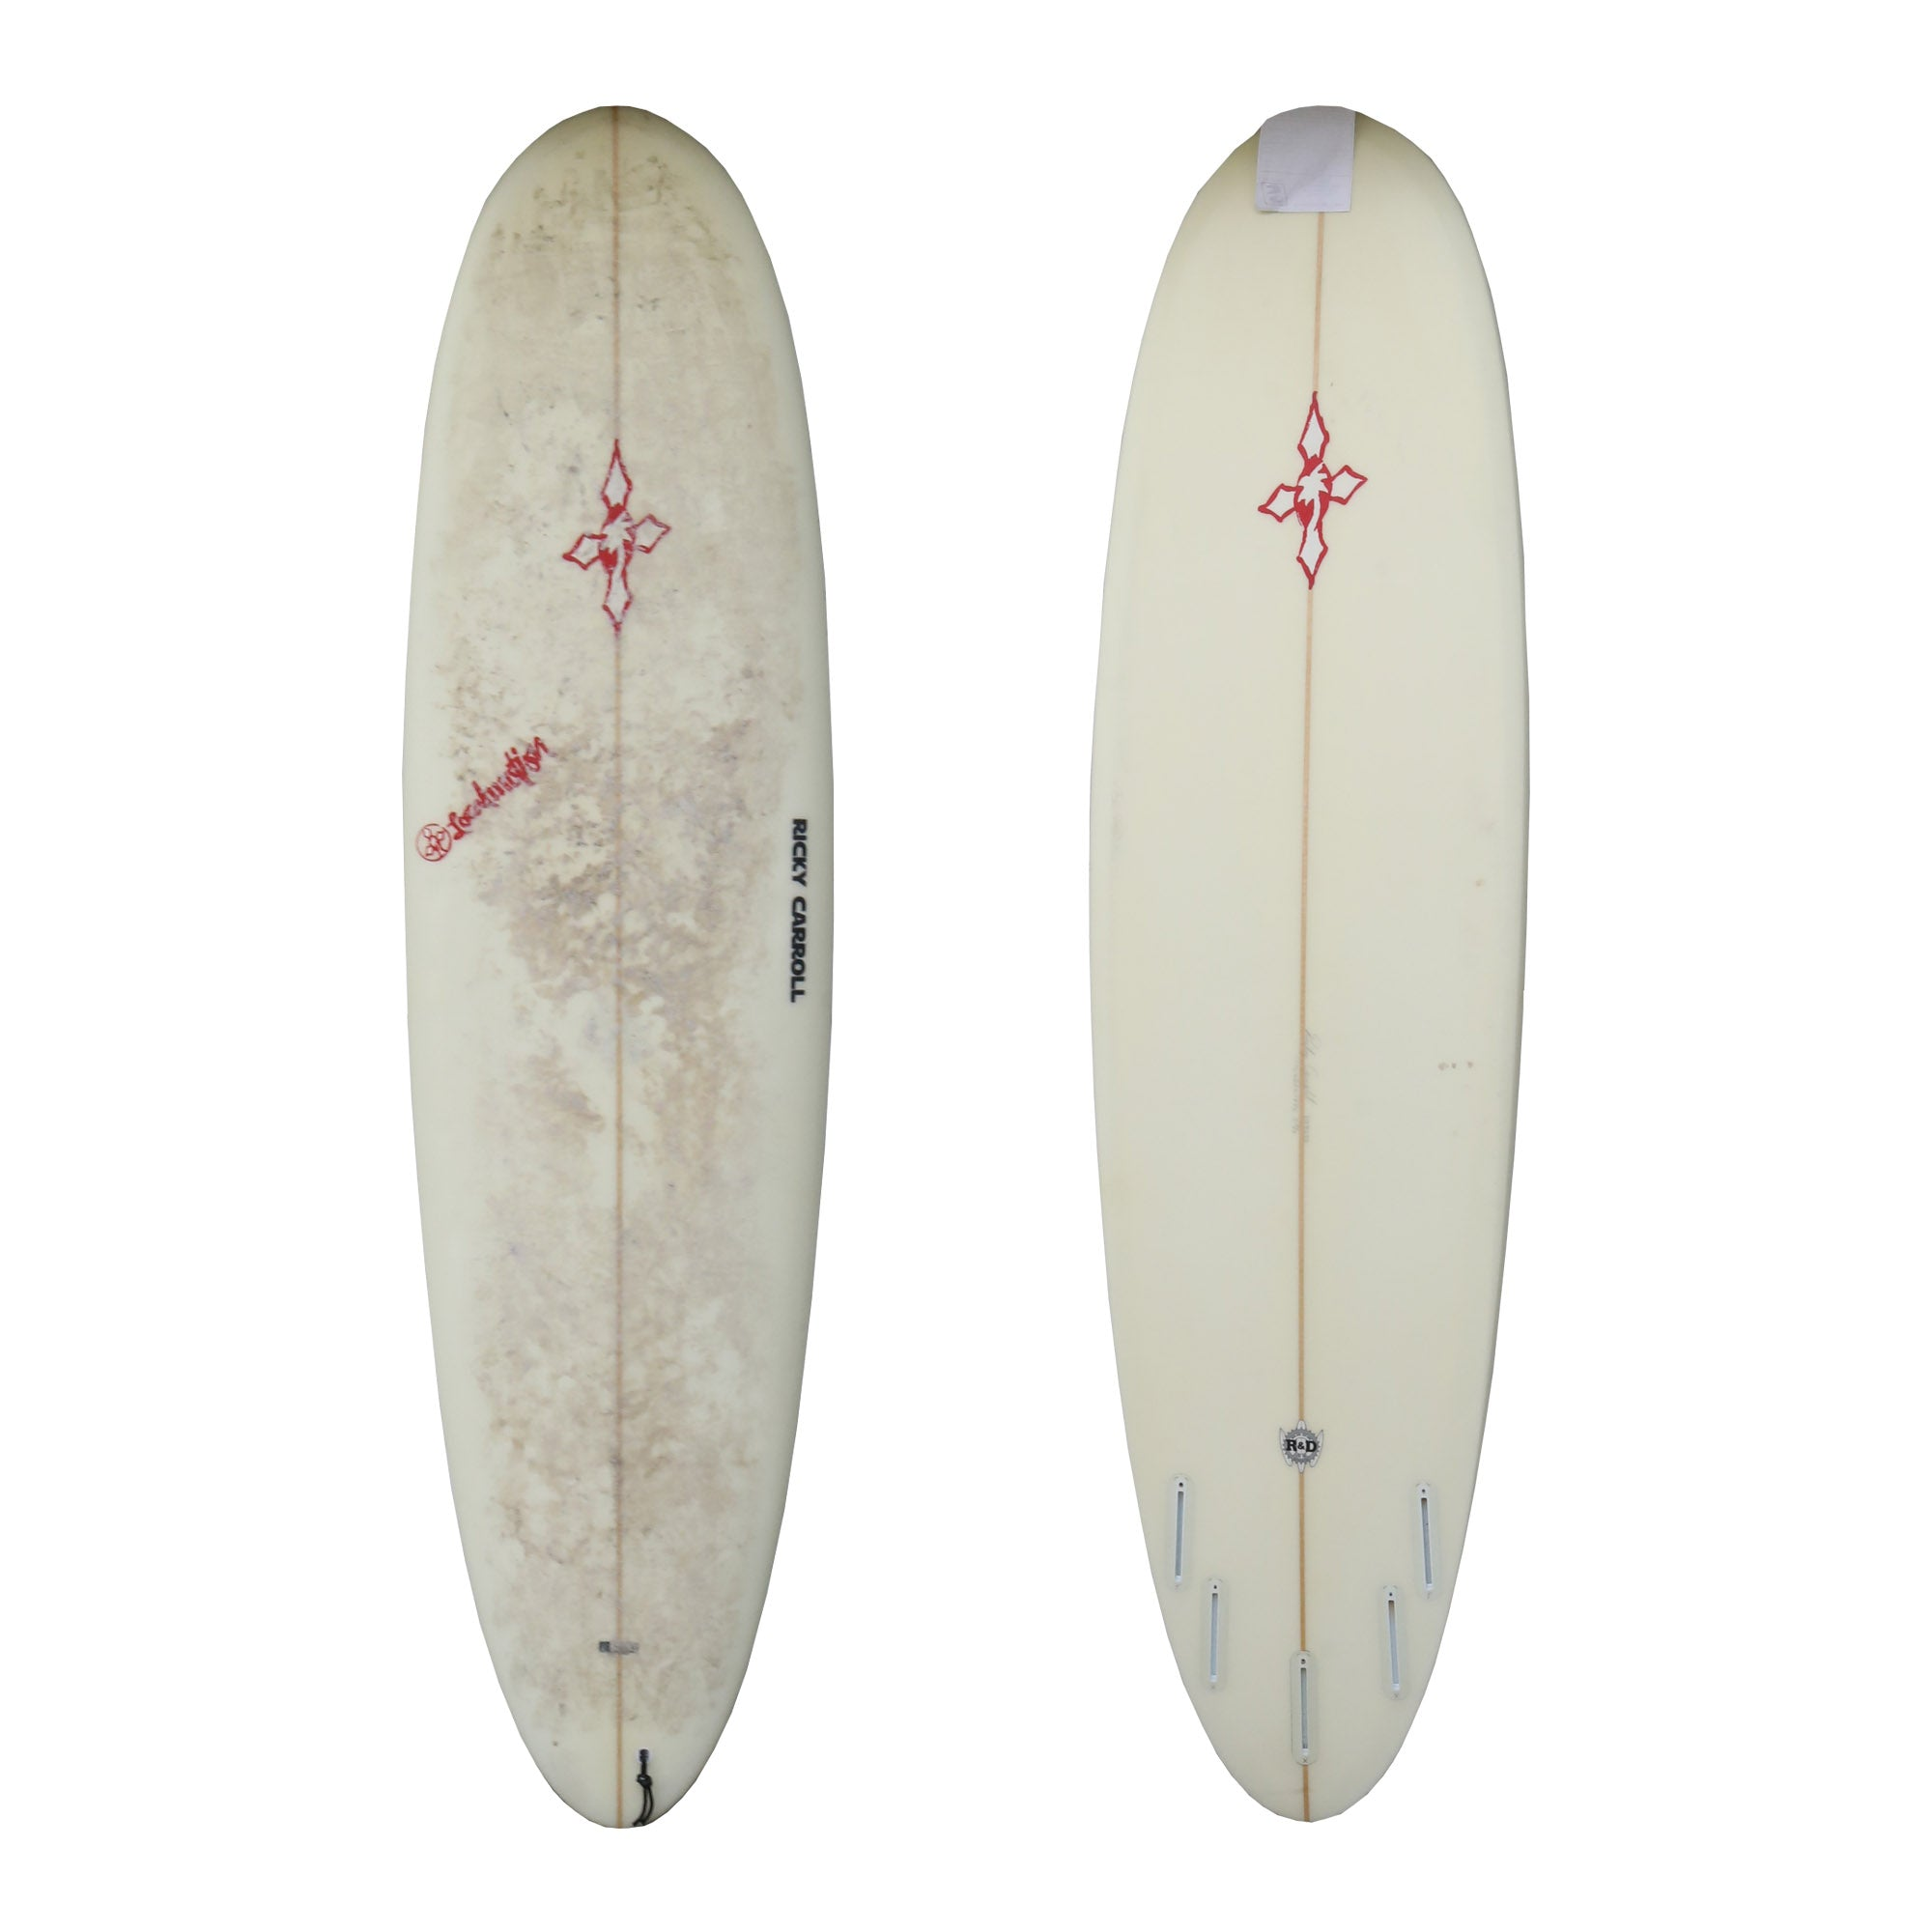 Ricky Carroll Mini Me 7'6 Used Surfboard